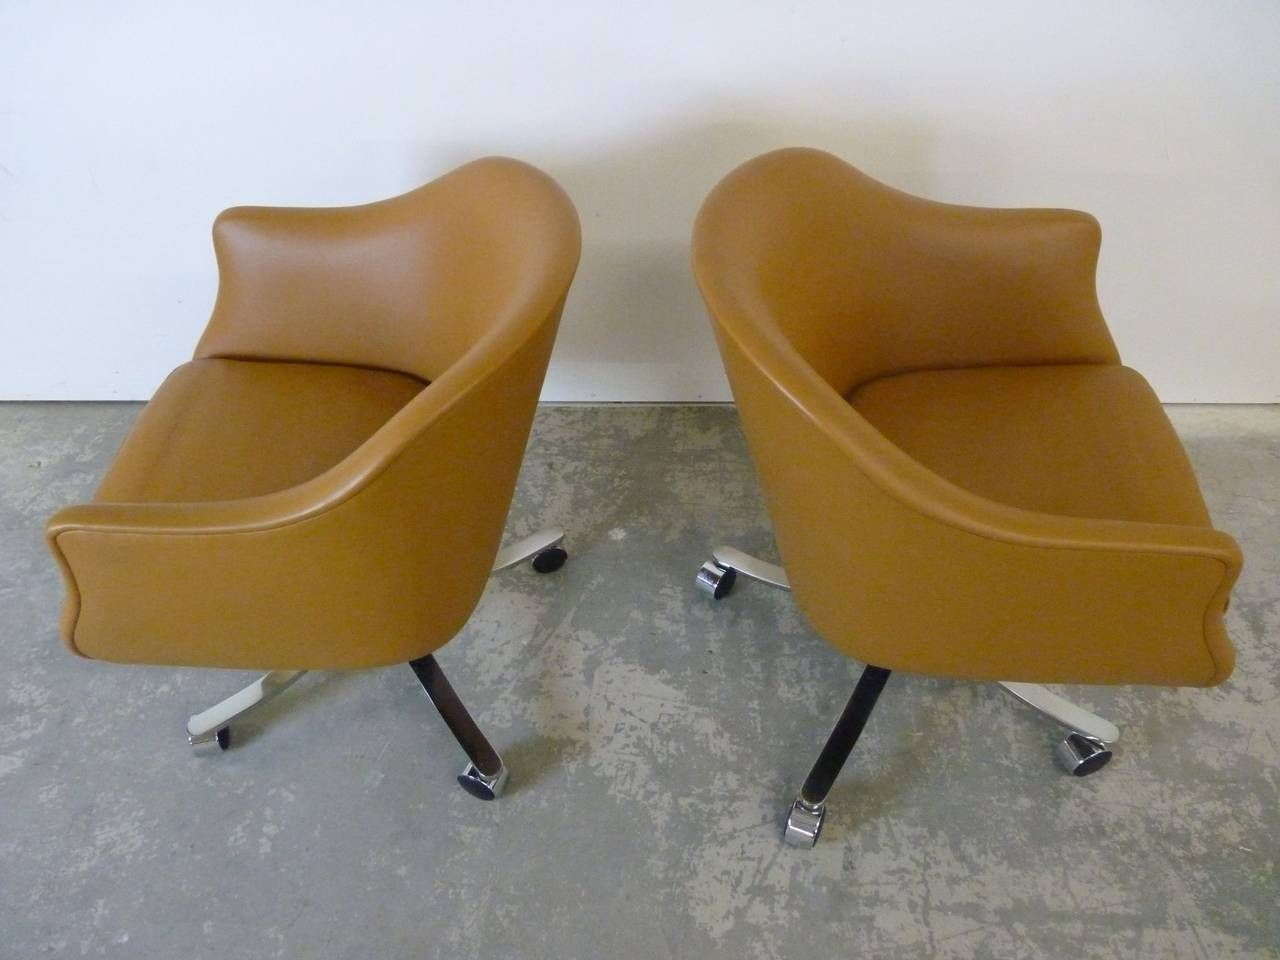 Desk Chairs by Nicos Zographos in Palomino Leather | From a unique collection of antique and modern armchairs at https://www.1stdibs.com/furniture/seating/armchairs/